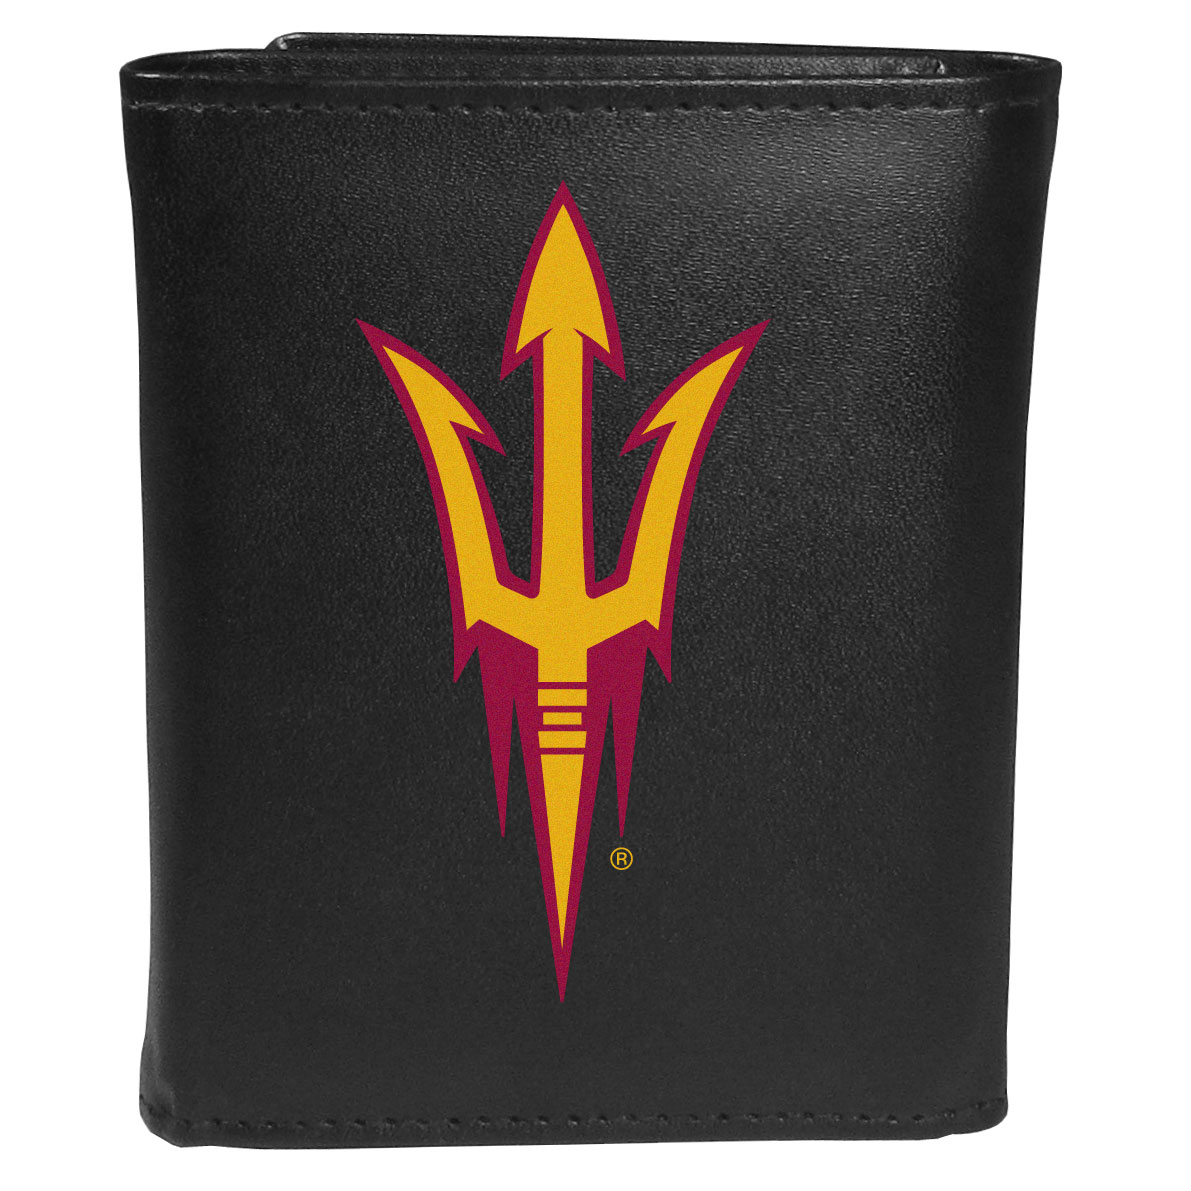 Arizona St. Sun Devils Leather Tri-fold Wallet, Large Logo - Our classic fine leather tri-fold wallet is meticulously crafted with genuine leather that will age beautifully so you will have a quality wallet for years to come. This is fan apparel at its finest. The wallet is packed with organizational  features; lots of credit card slots, large billfold pocket, and a window ID slot. The front of the wallet features an extra large Arizona St. Sun Devils printed logo.